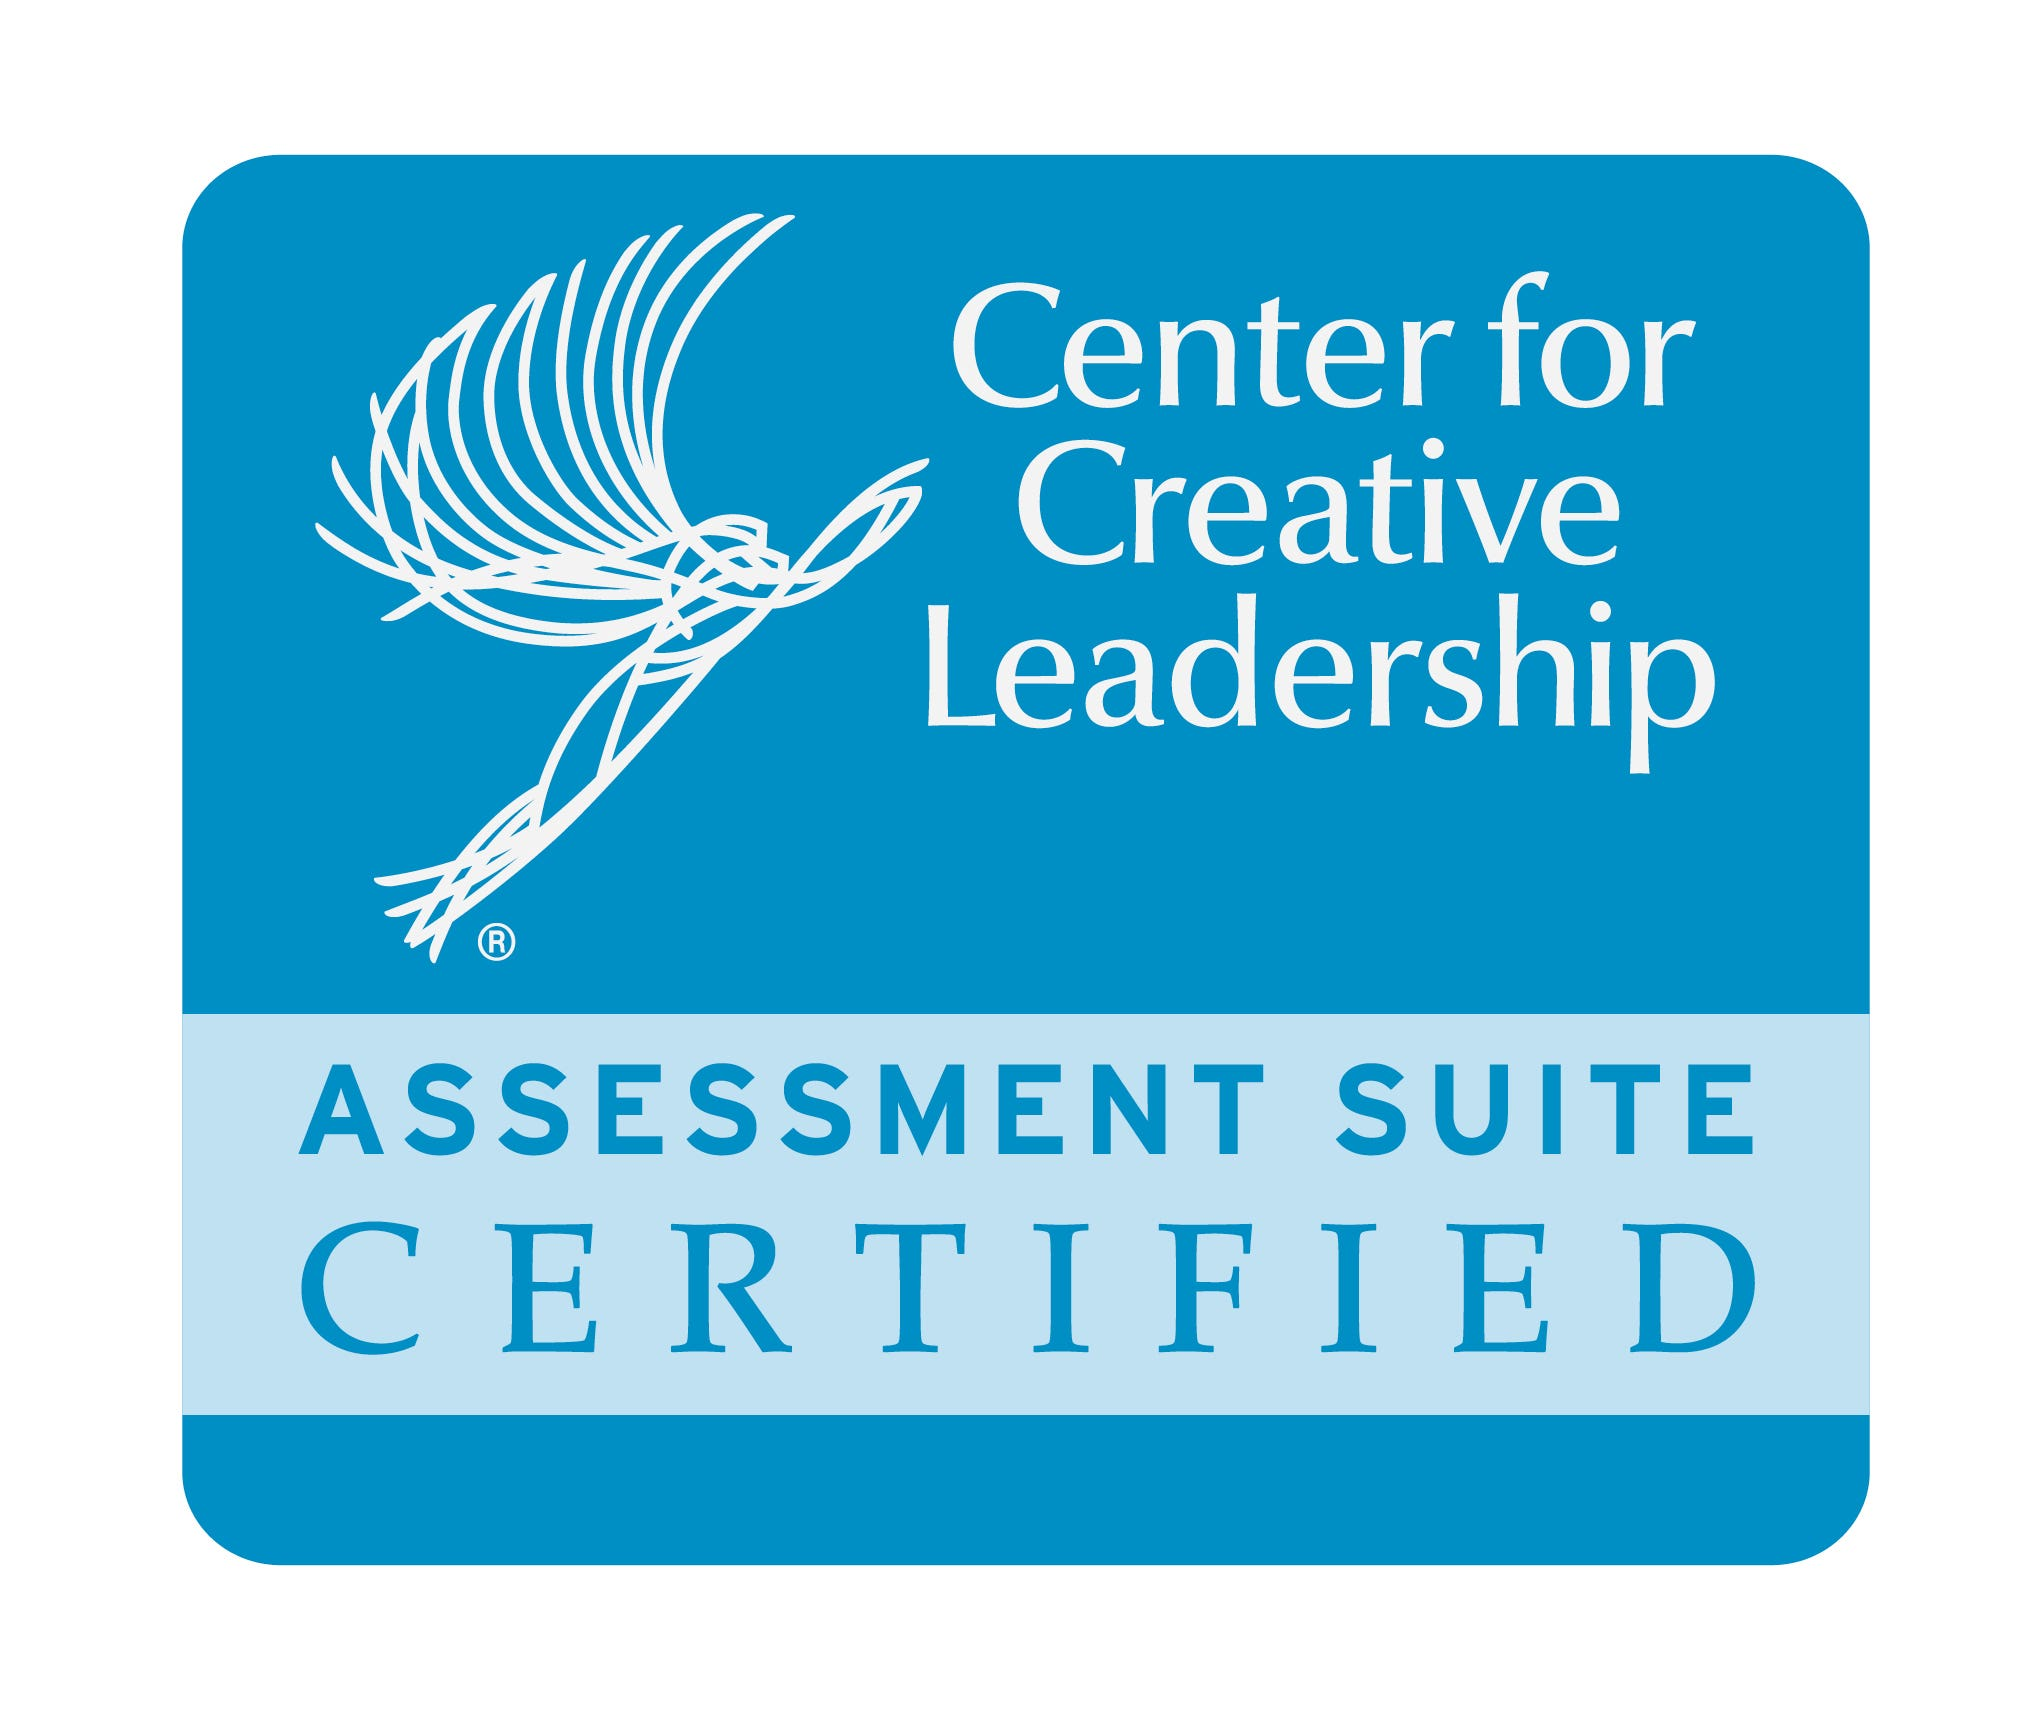 360 Feedback Certification from the Center for Creative Leadership